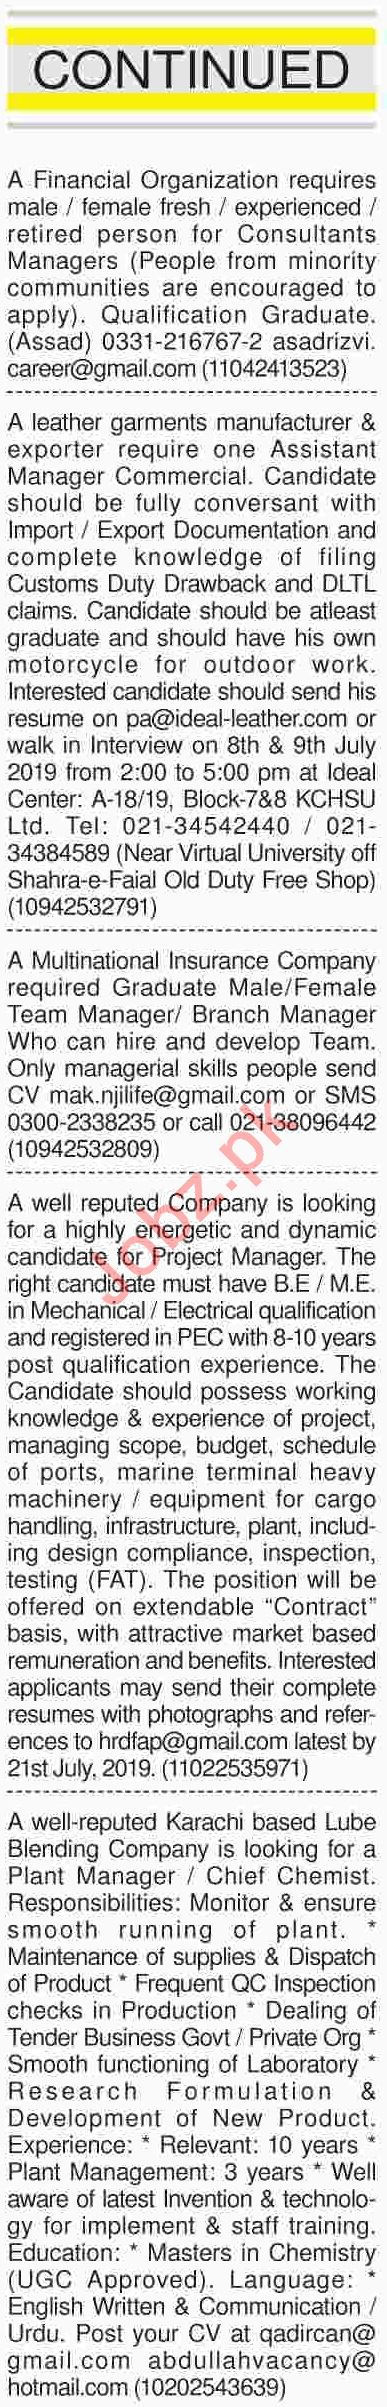 Dawn Sunday Classified Ads 7th July 2019 for Management